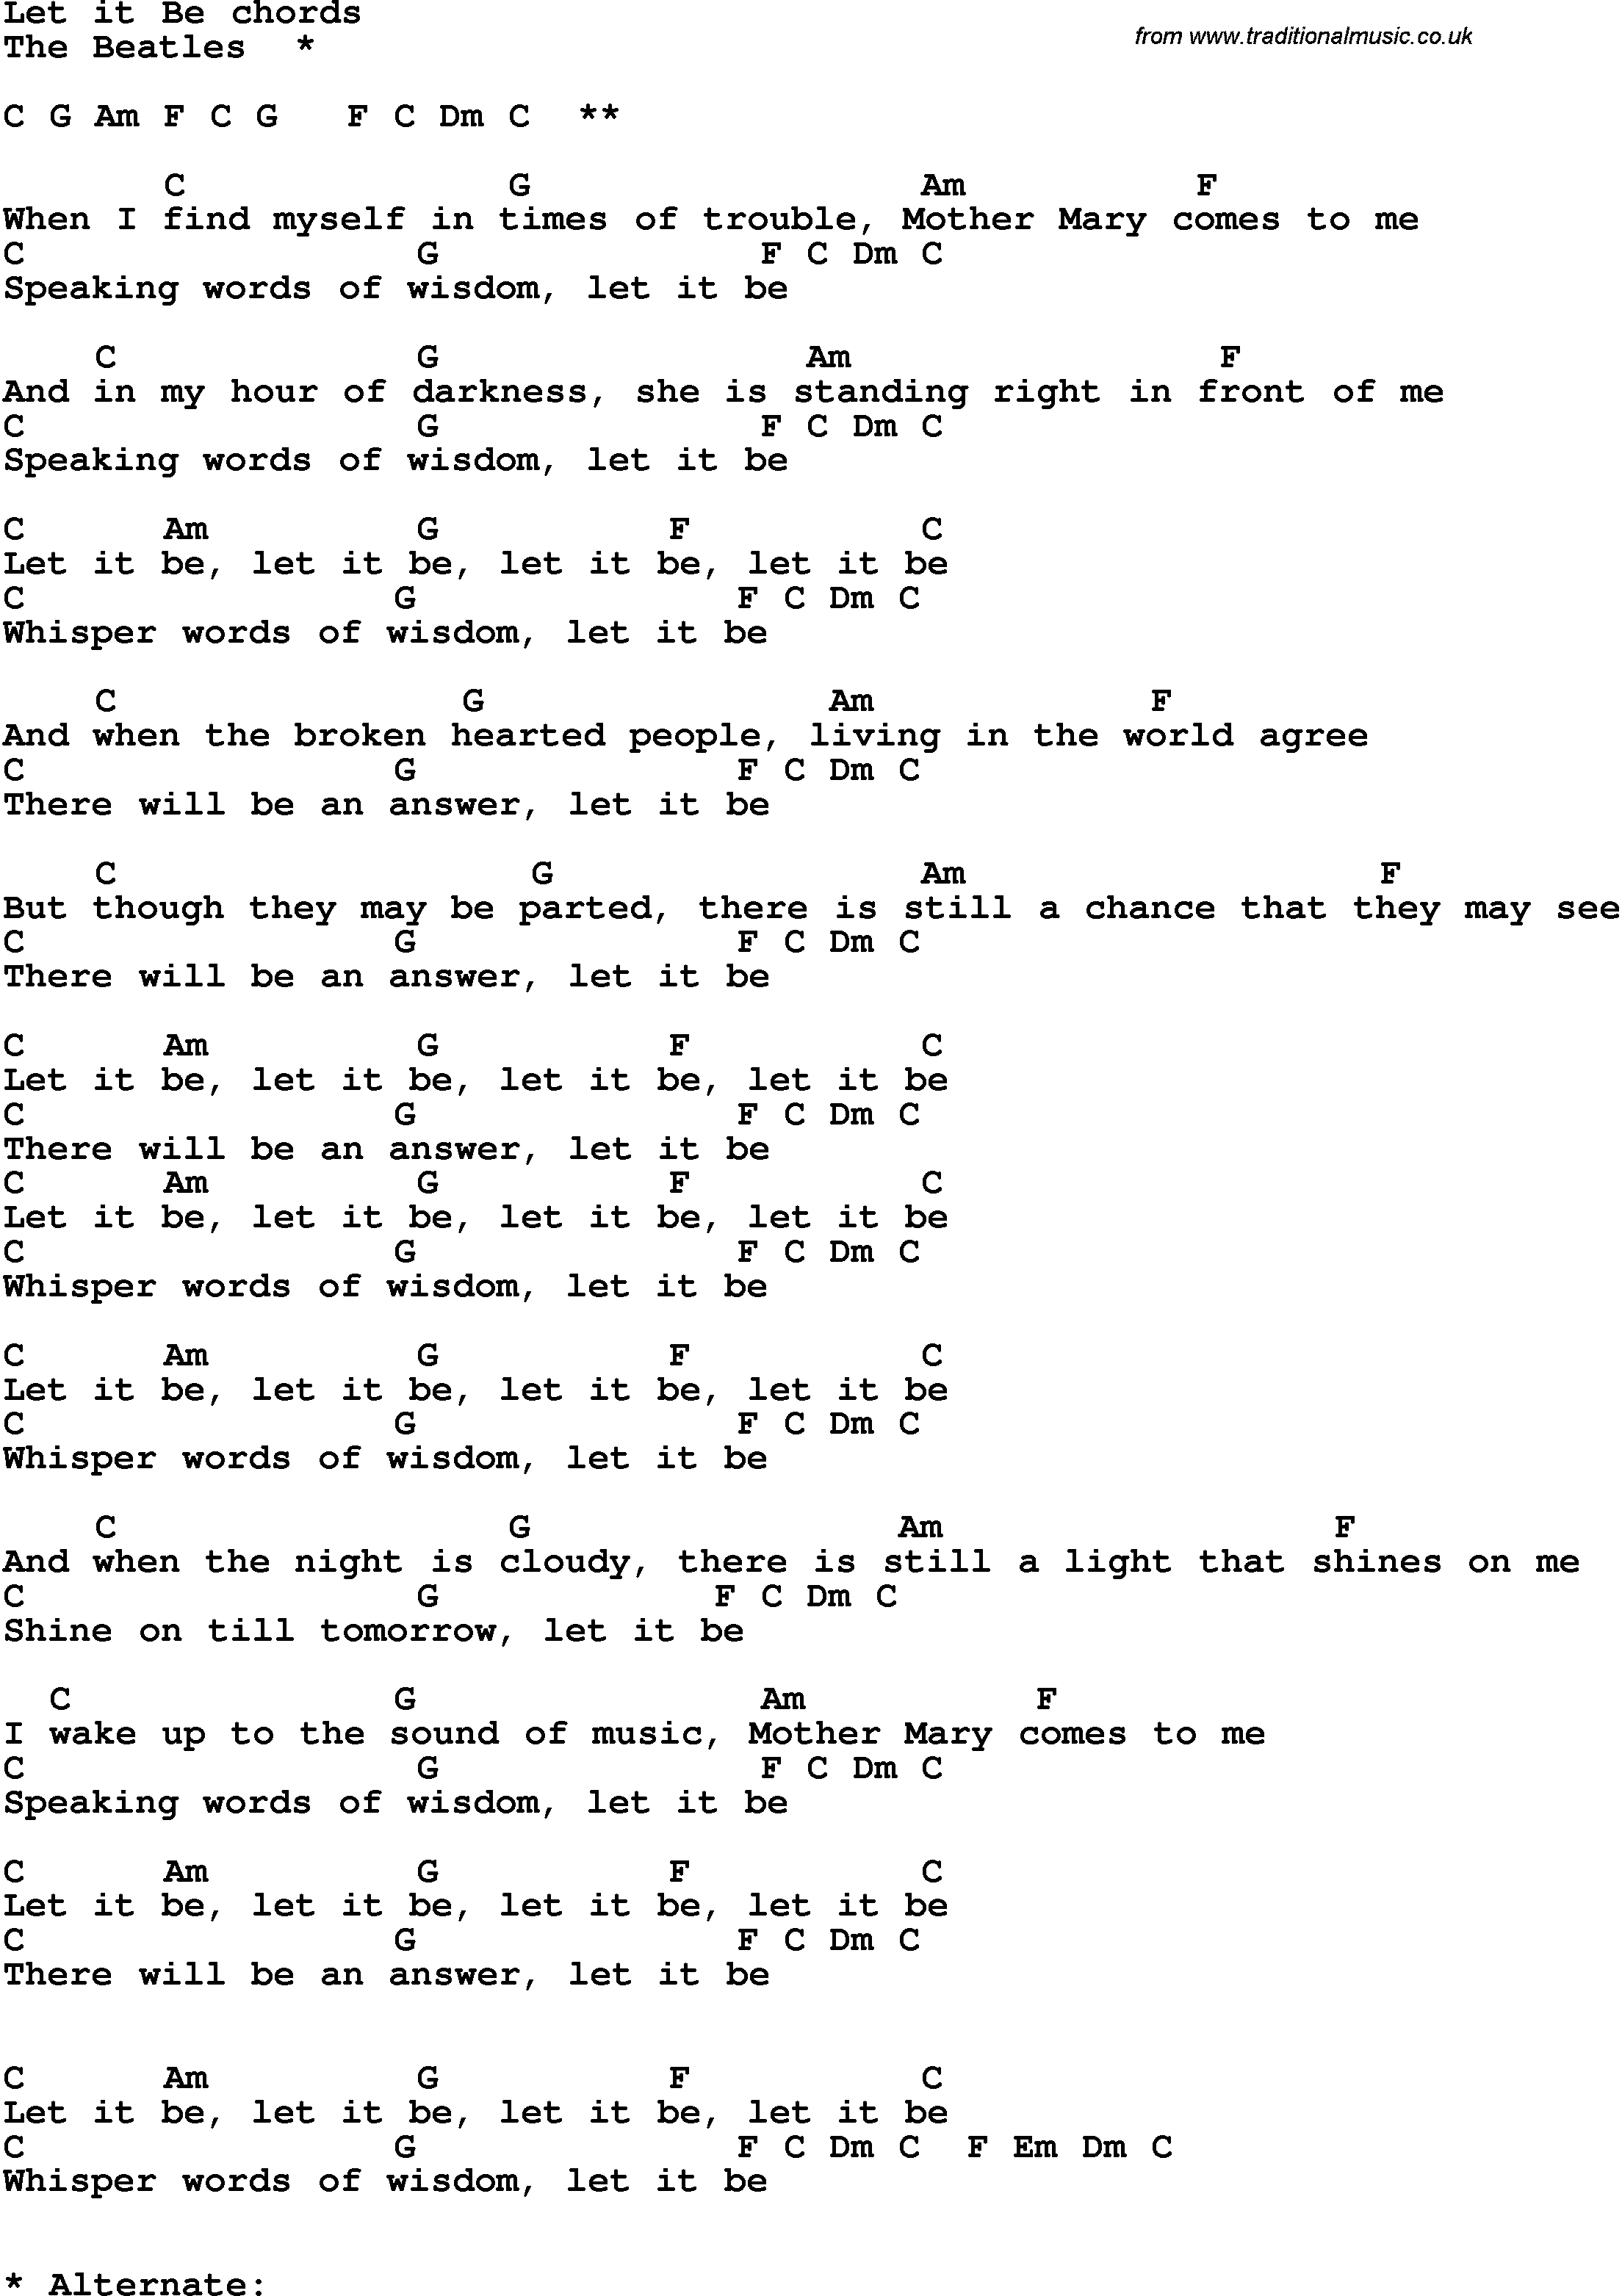 Song lyrics with guitar chords for let it be the beatles song lyrics with guitar chords for let it be the beatles hexwebz Images